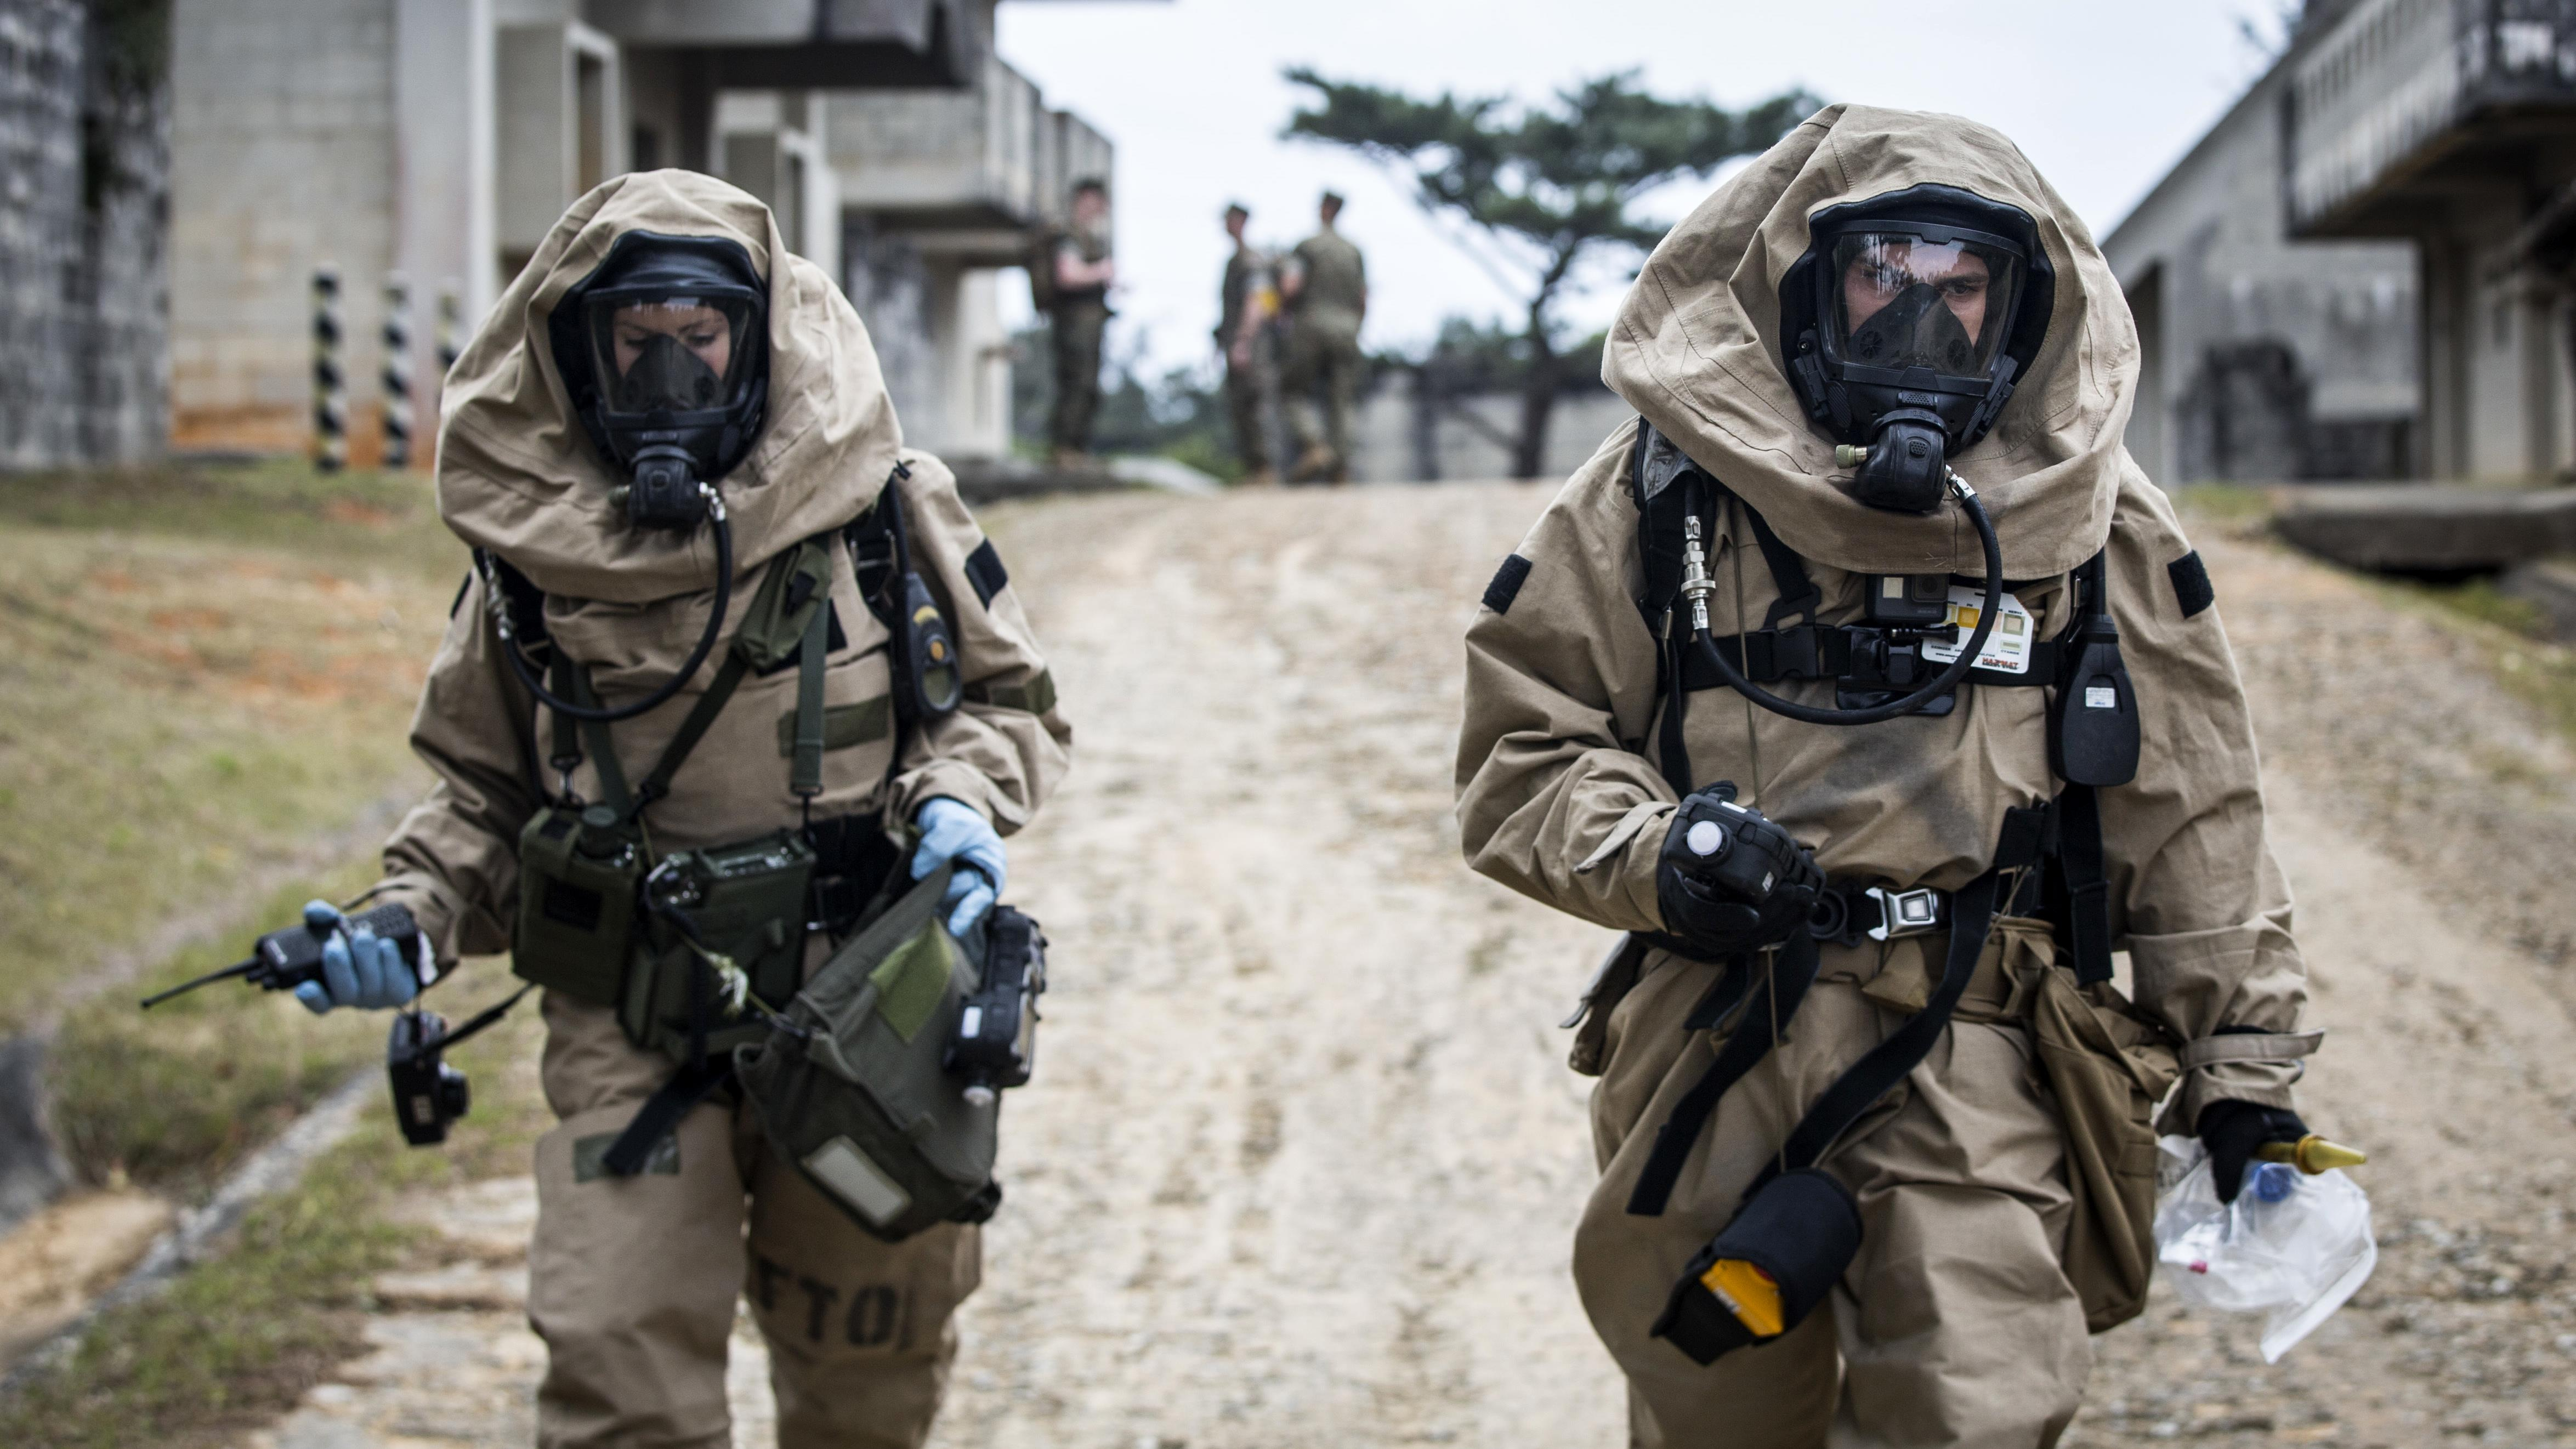 MOS OCC Field 57: Chemical, Biological, Radiological and Nuclear (CBRN)  Defense